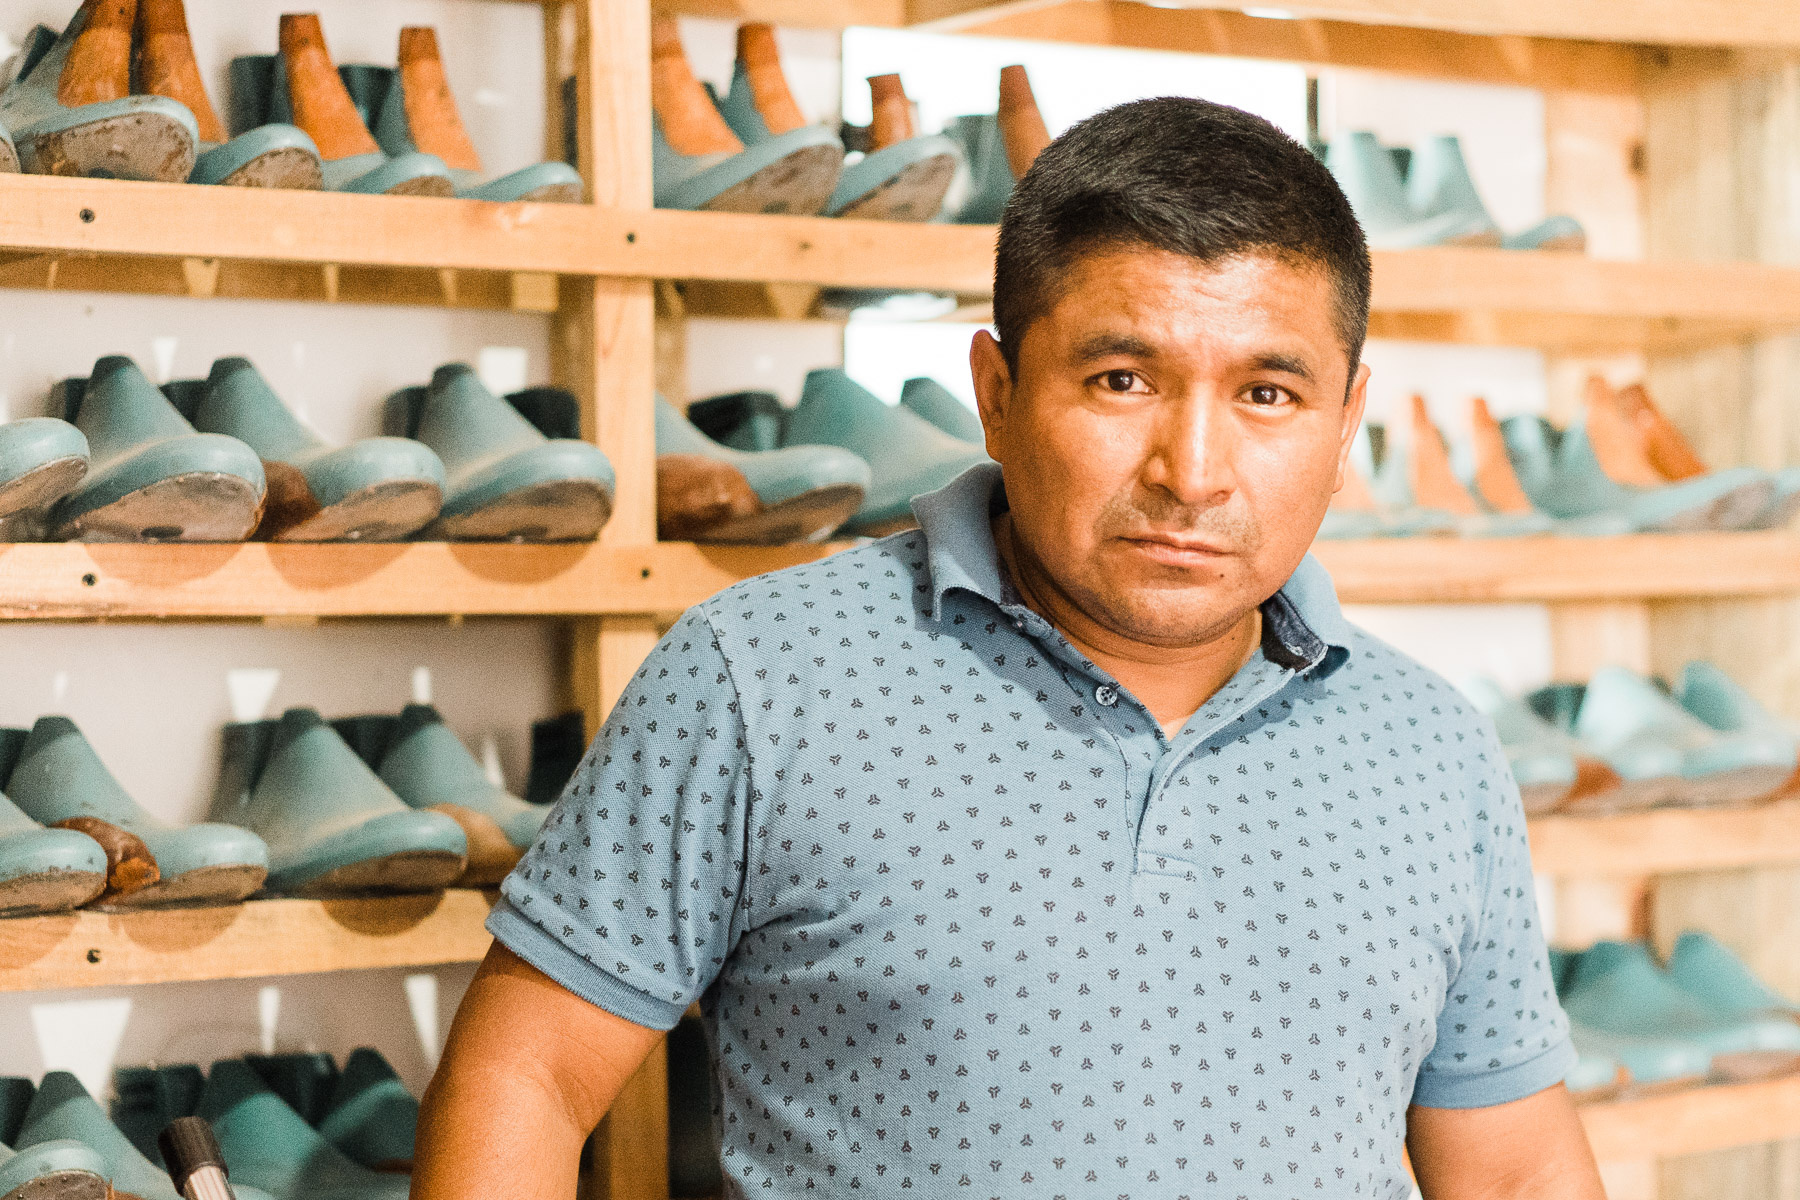 a town of cobblers - Adelante Shoe Co